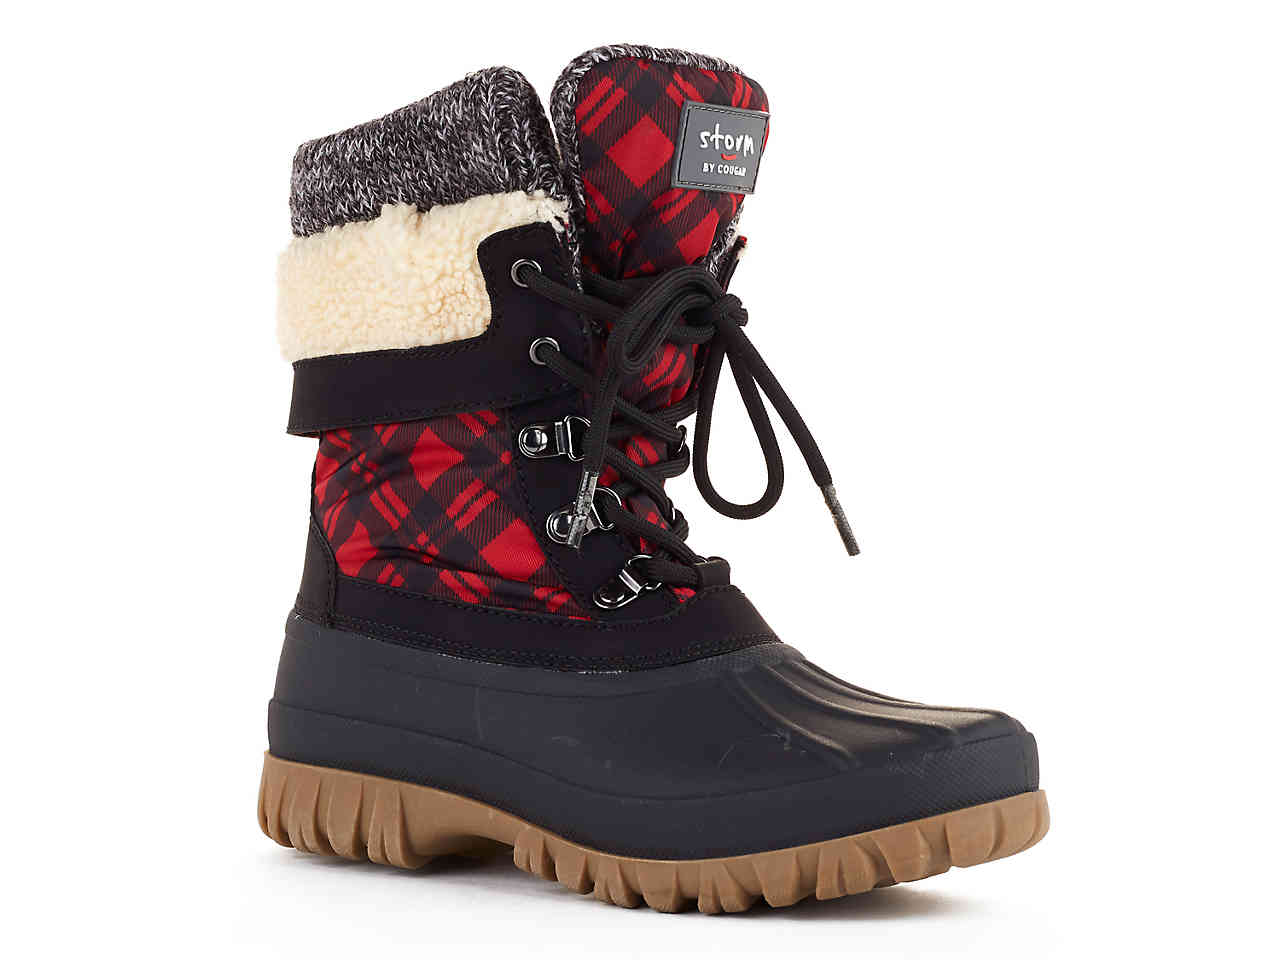 Snow Boots To Wear During The Cold, Winter Months